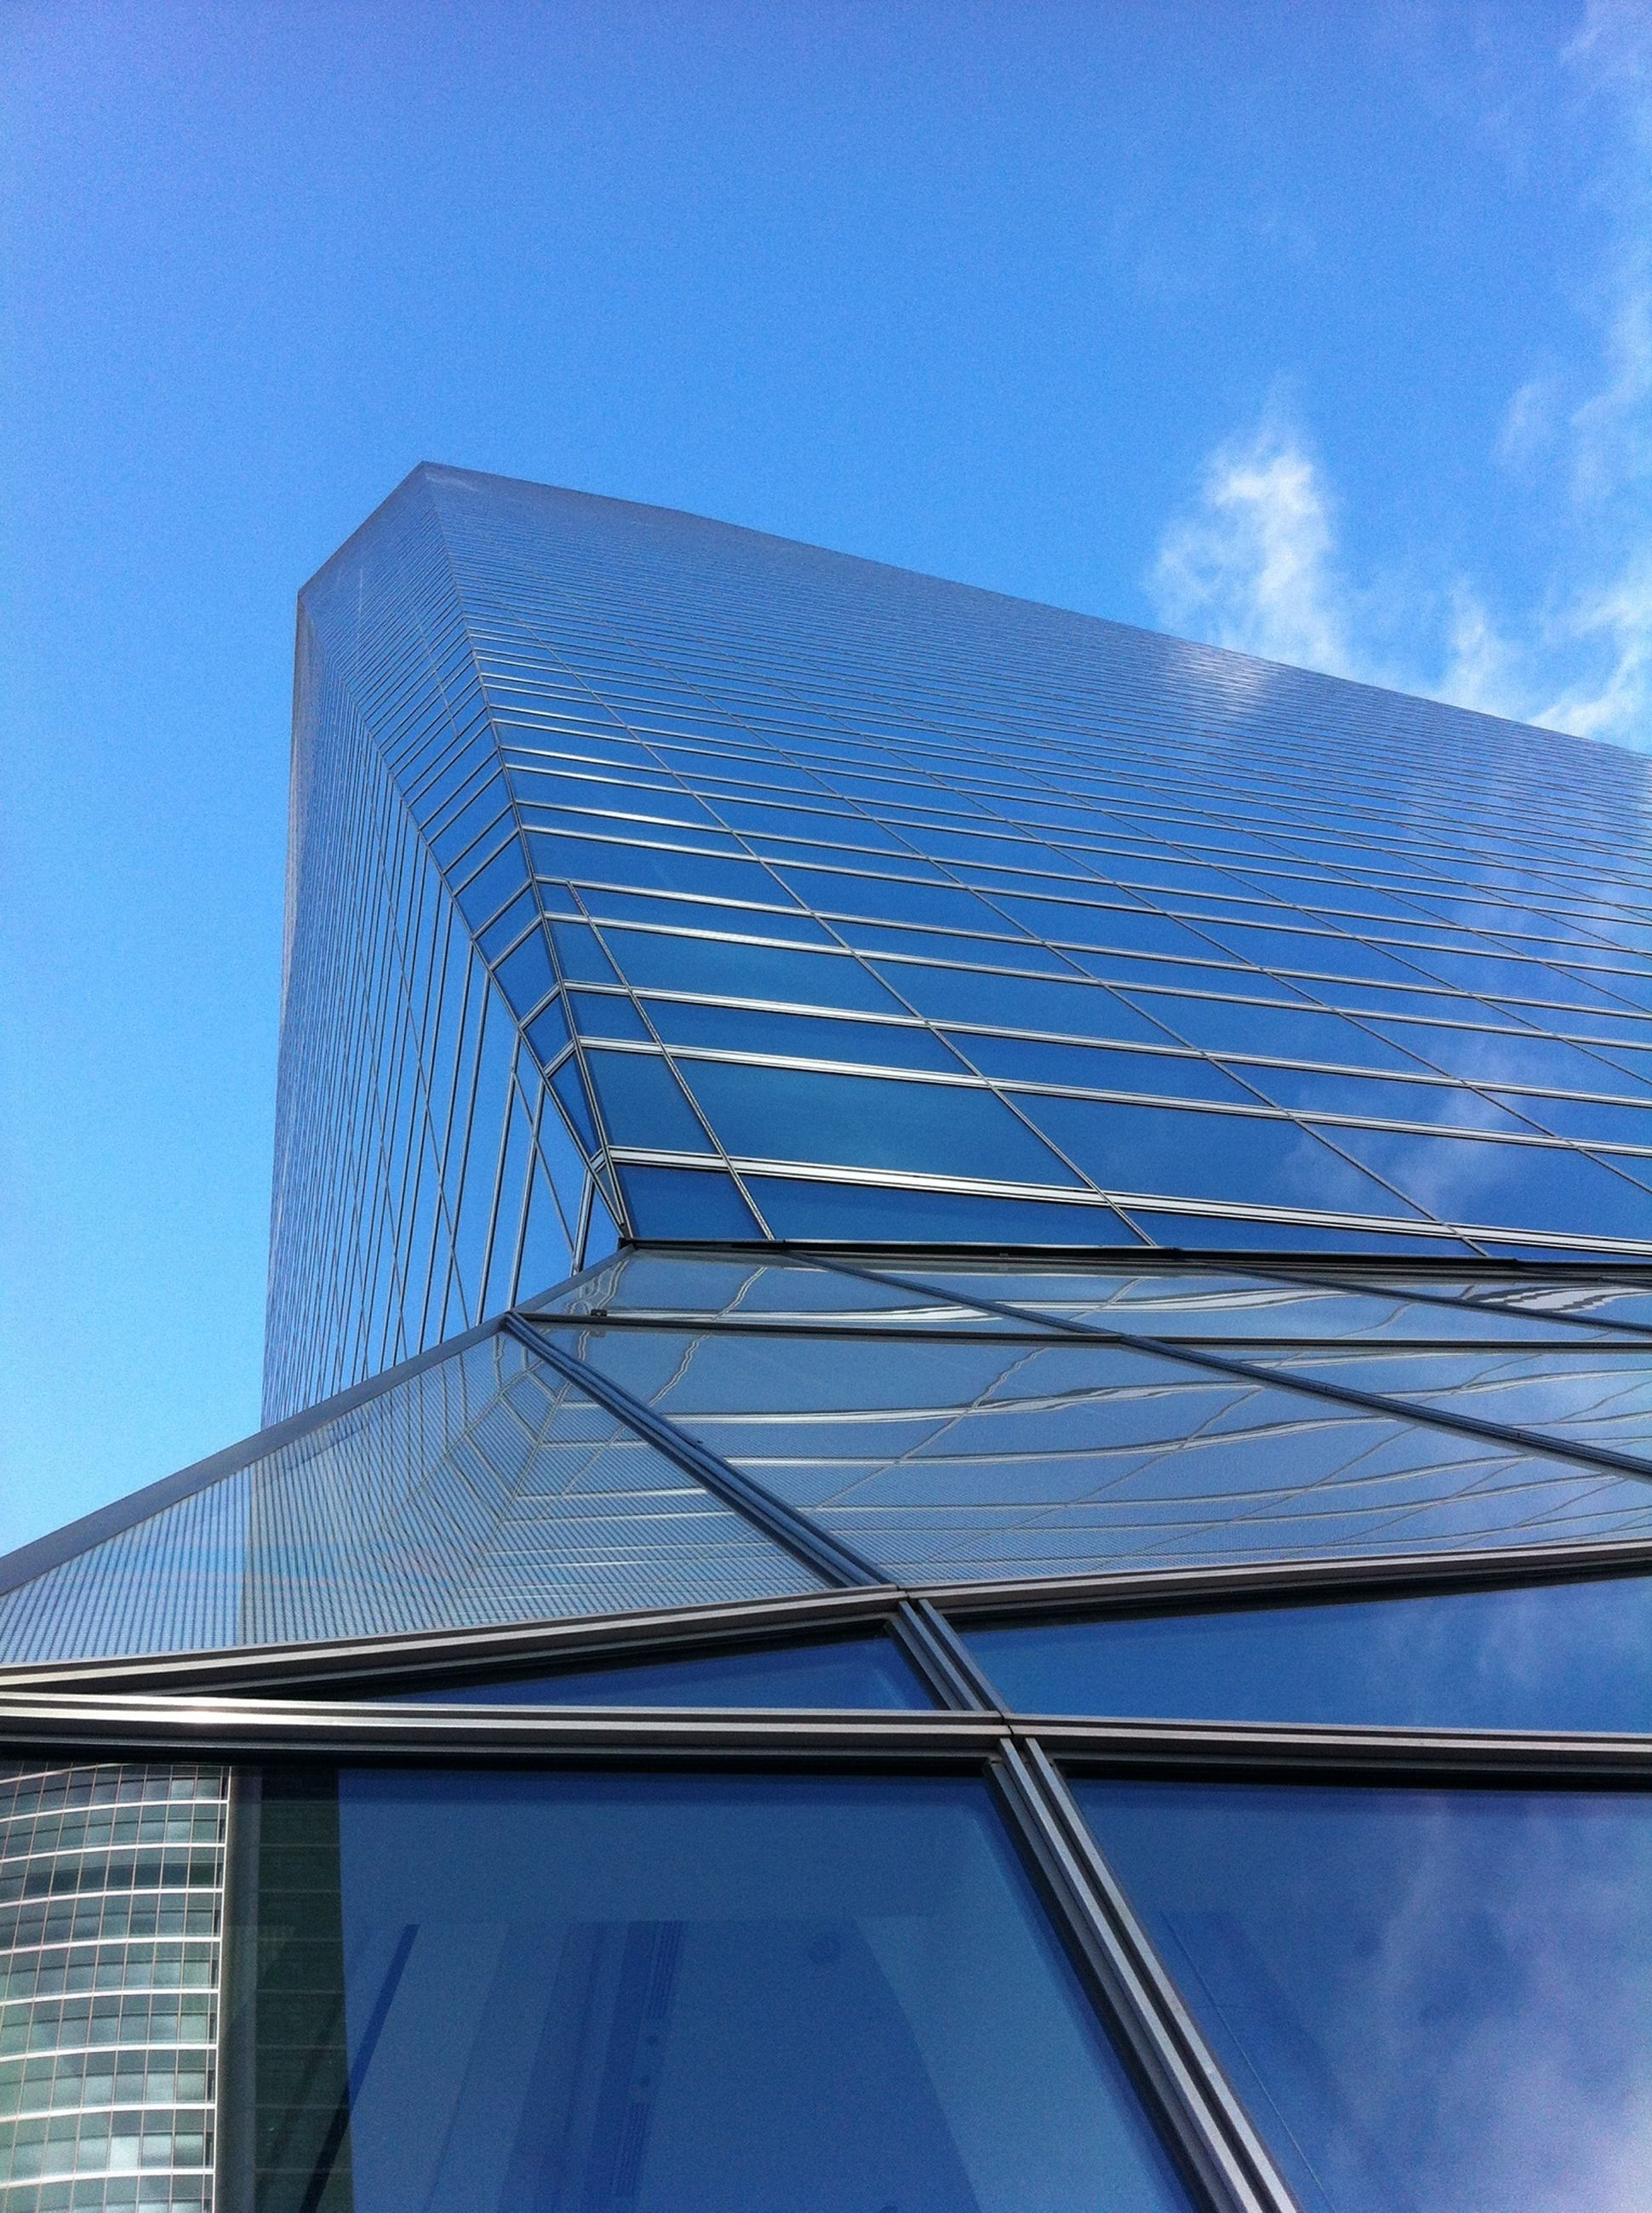 low angle view, architecture, built structure, building exterior, modern, blue, office building, sky, skyscraper, tall - high, building, city, tower, pattern, glass - material, day, clear sky, reflection, outdoors, no people